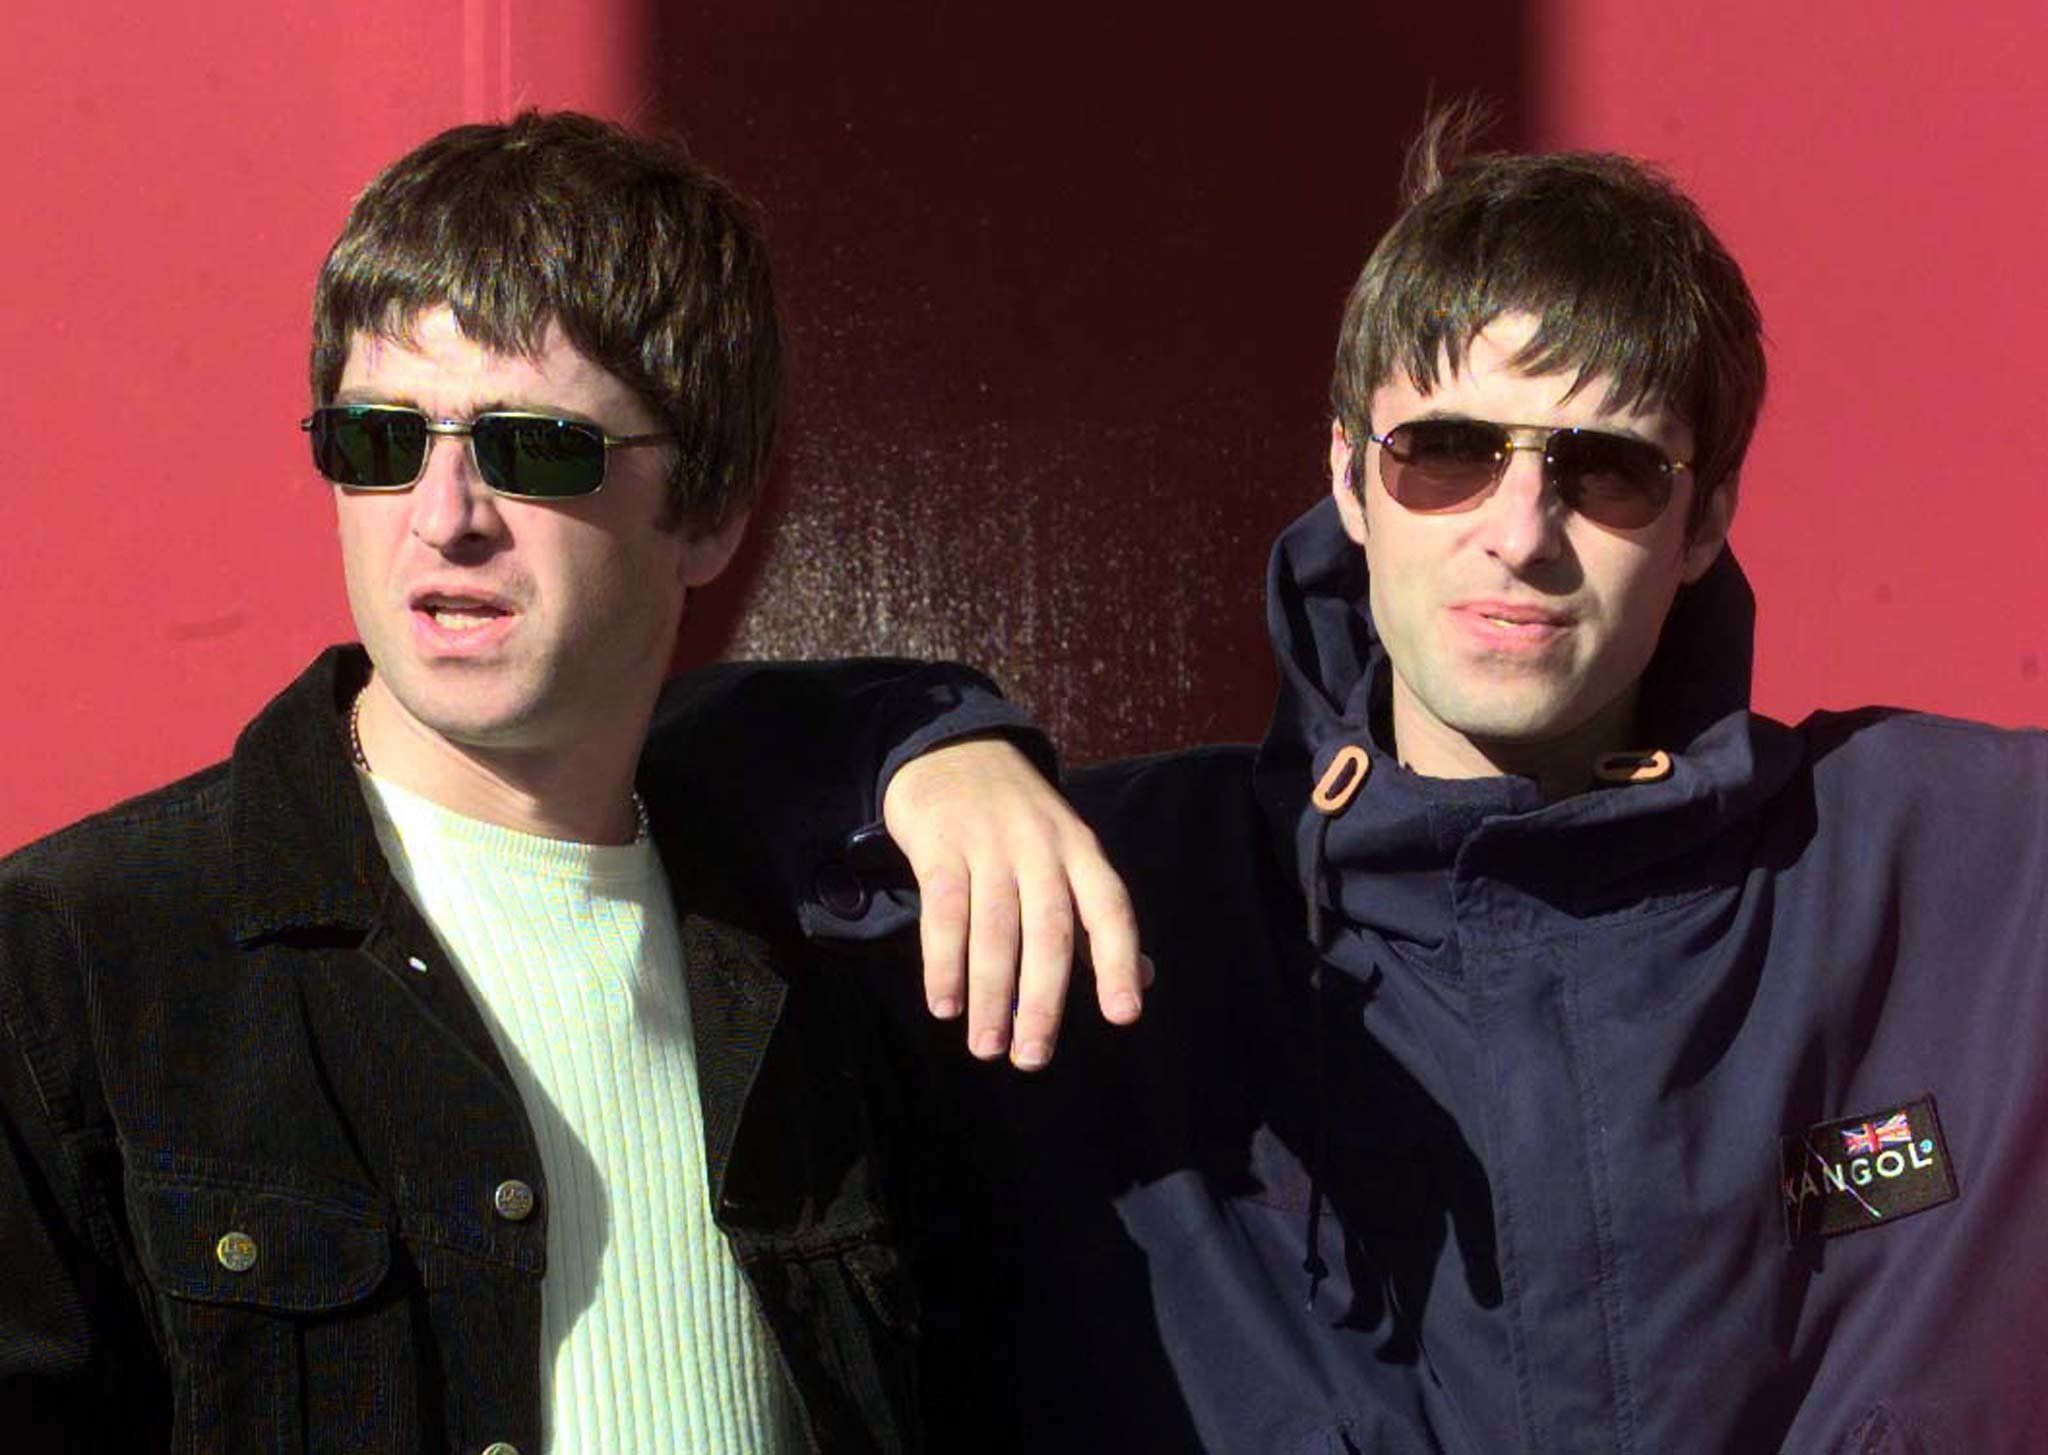 The Gallagher brothers have had a famously tumultuous